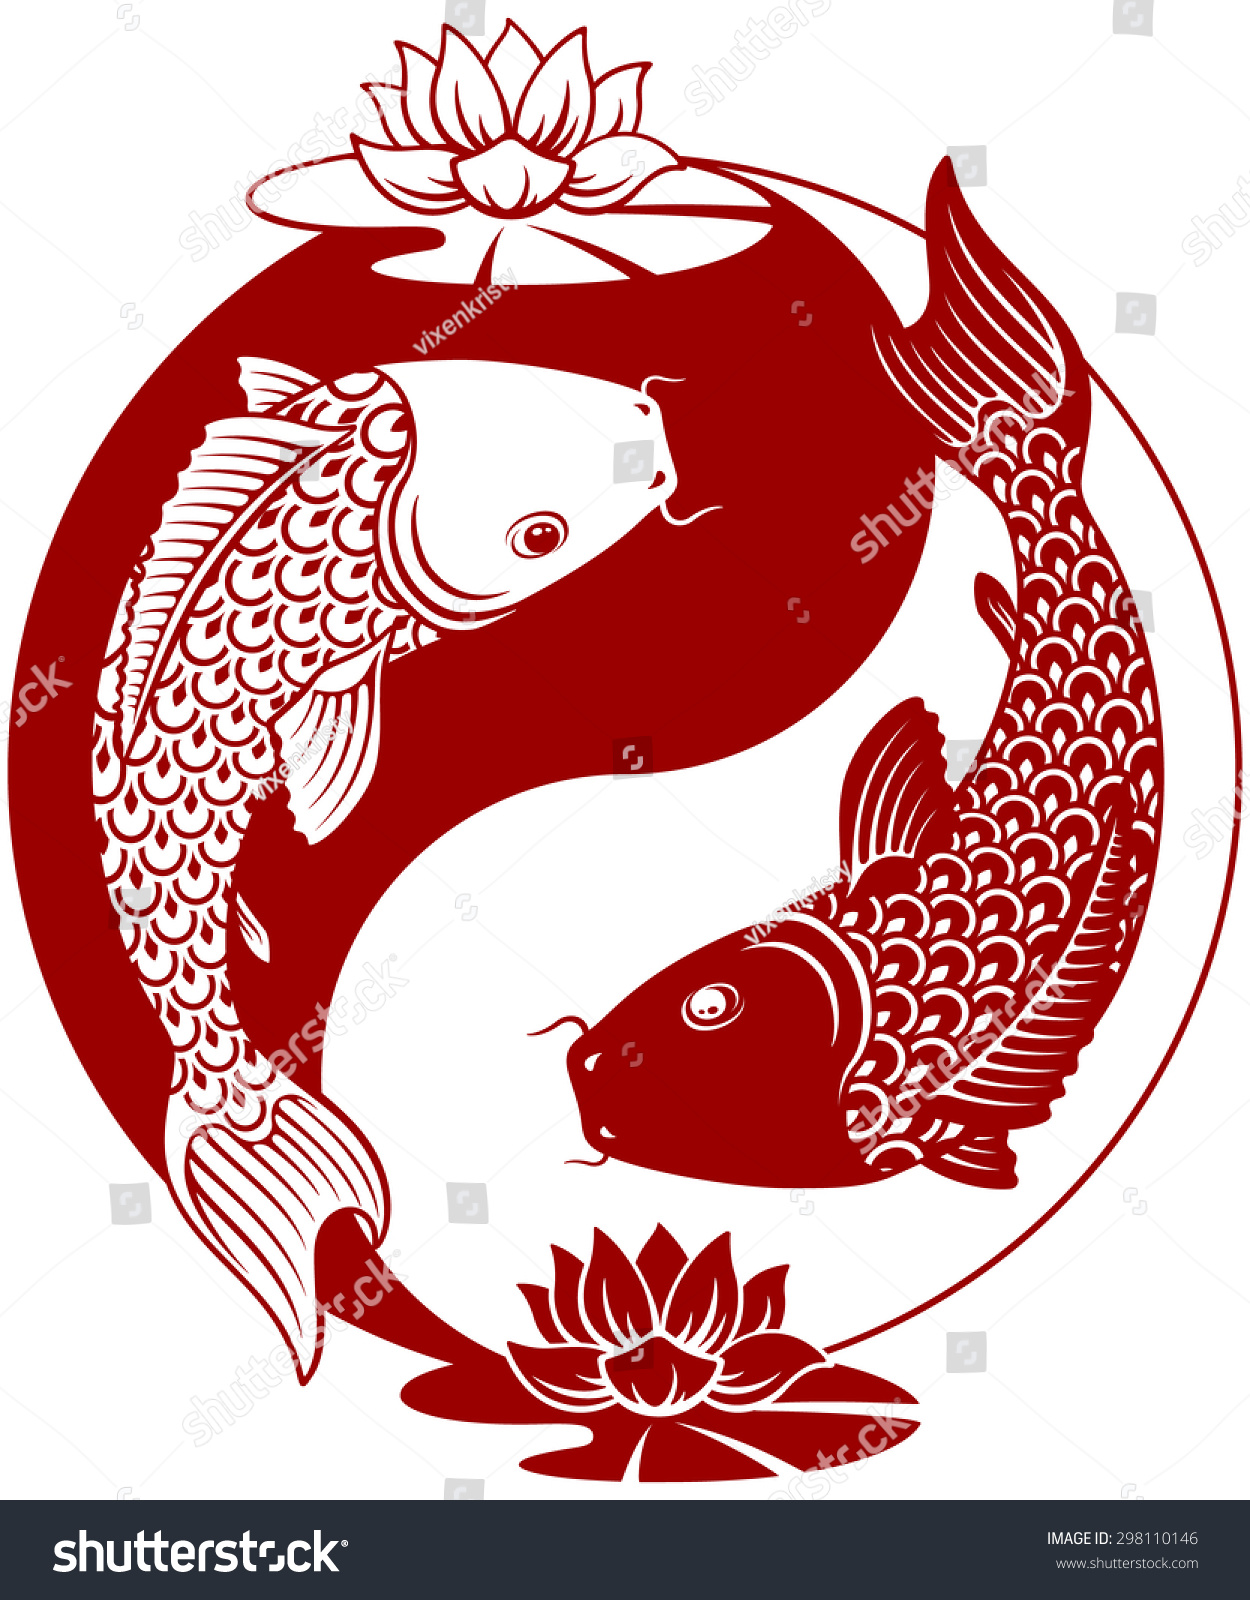 Koi yin yang symbol for Koi fish vector